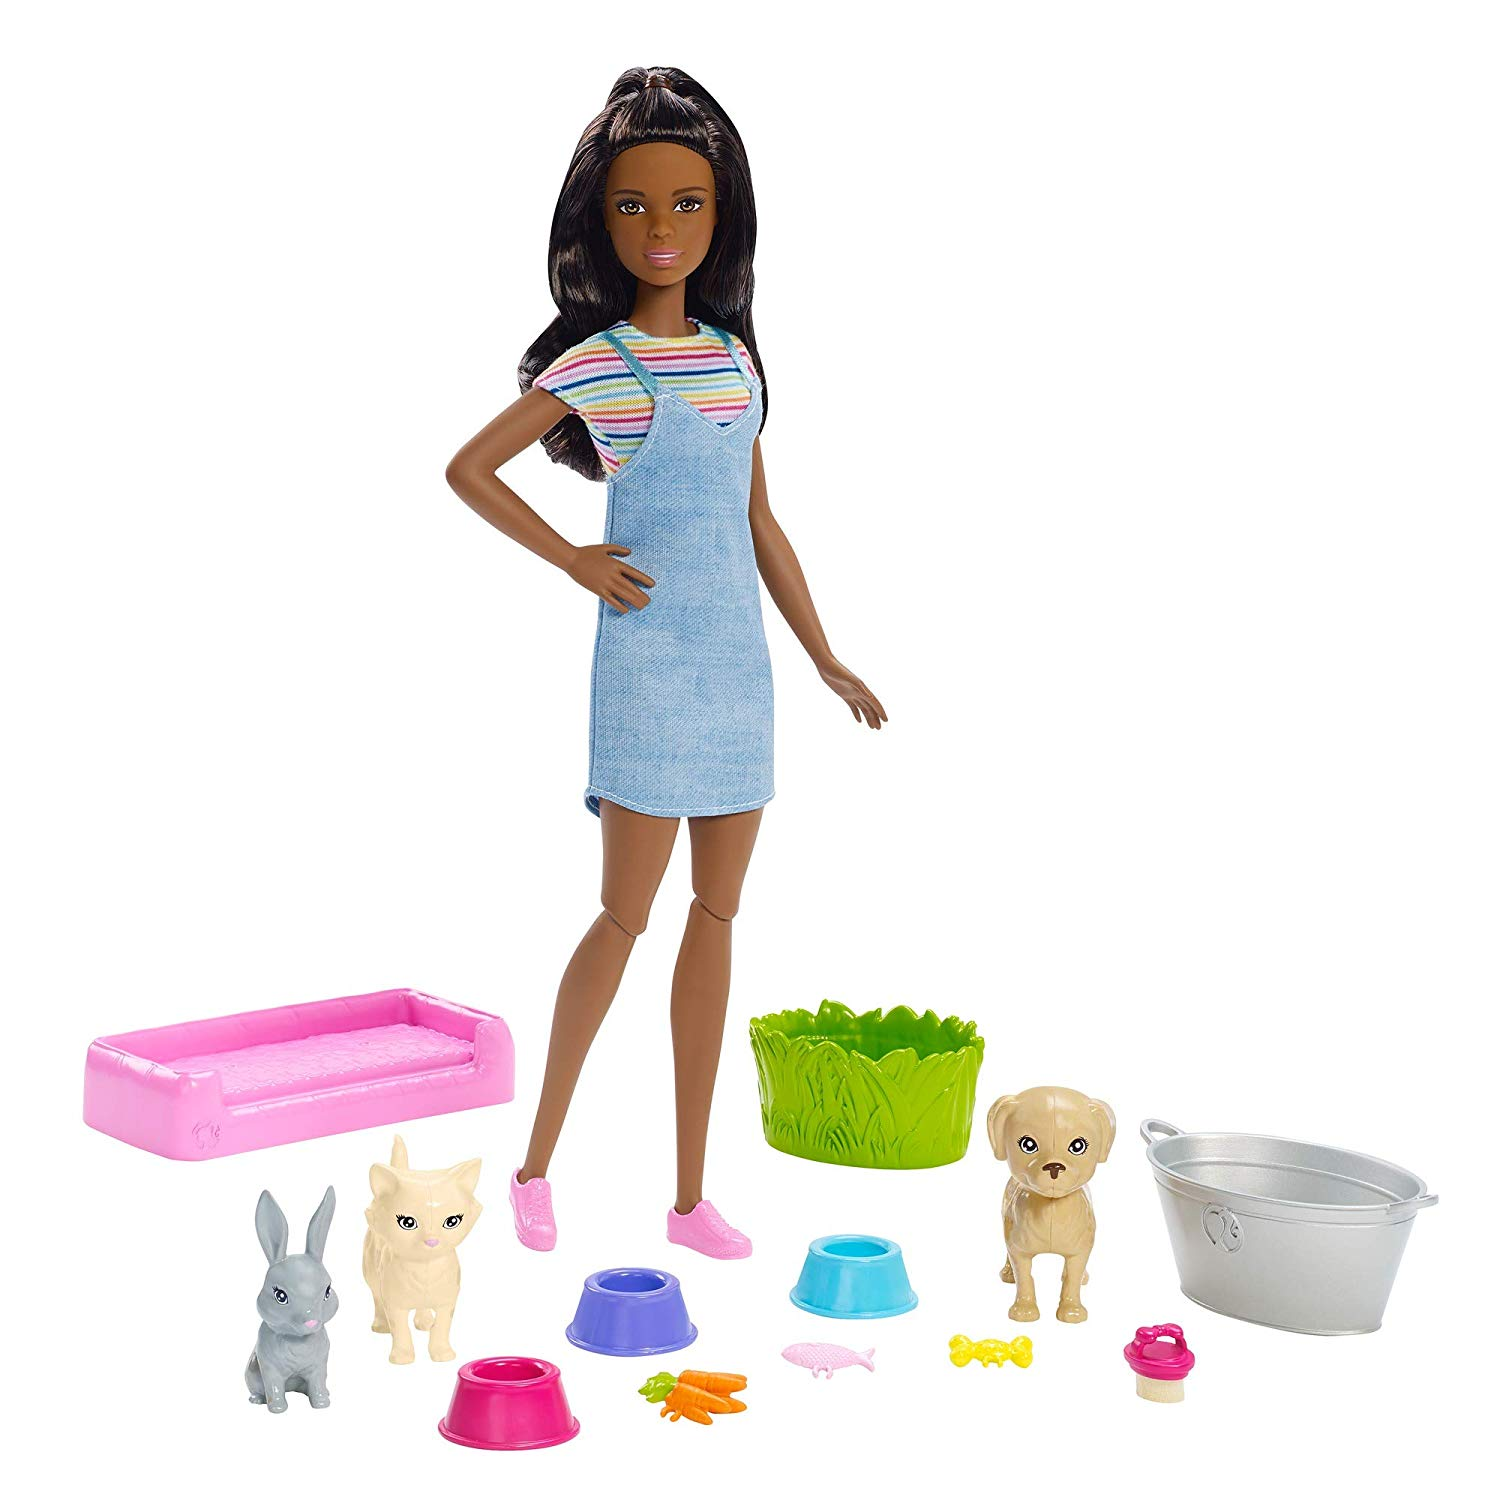 Barbie Play 'N' Wash Pets Playset with Brunette Doll & Accessories